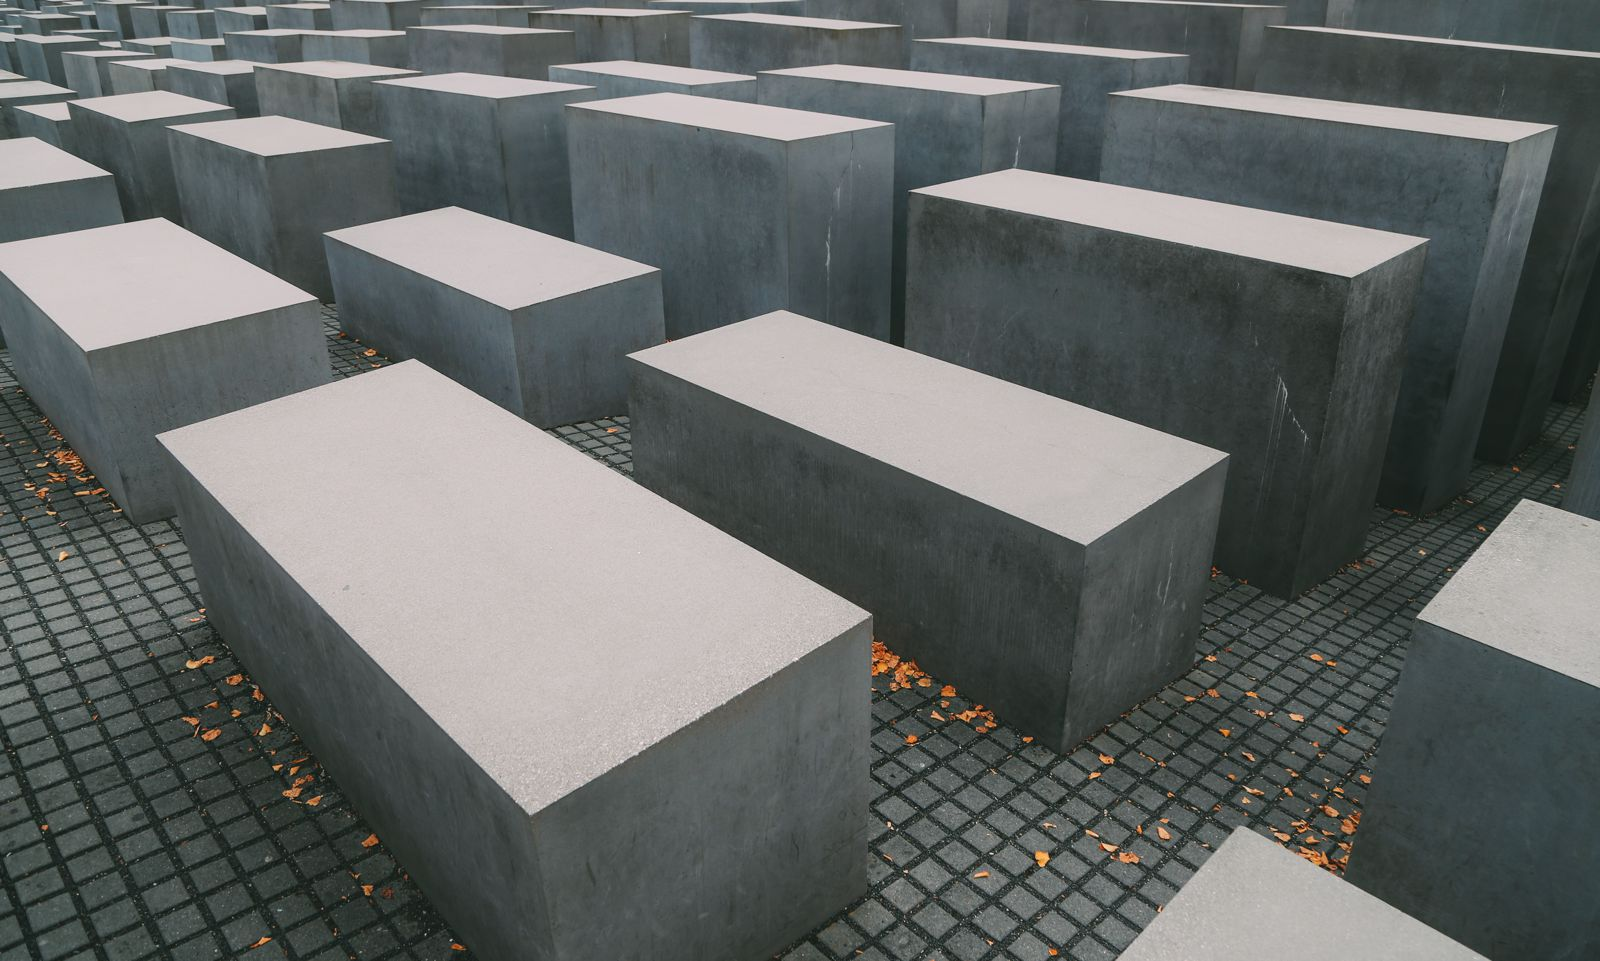 A Memoir To The Fallen - The Holocaust Memorial Also known as the Memorial to the Murdered Jews of Europe (11)